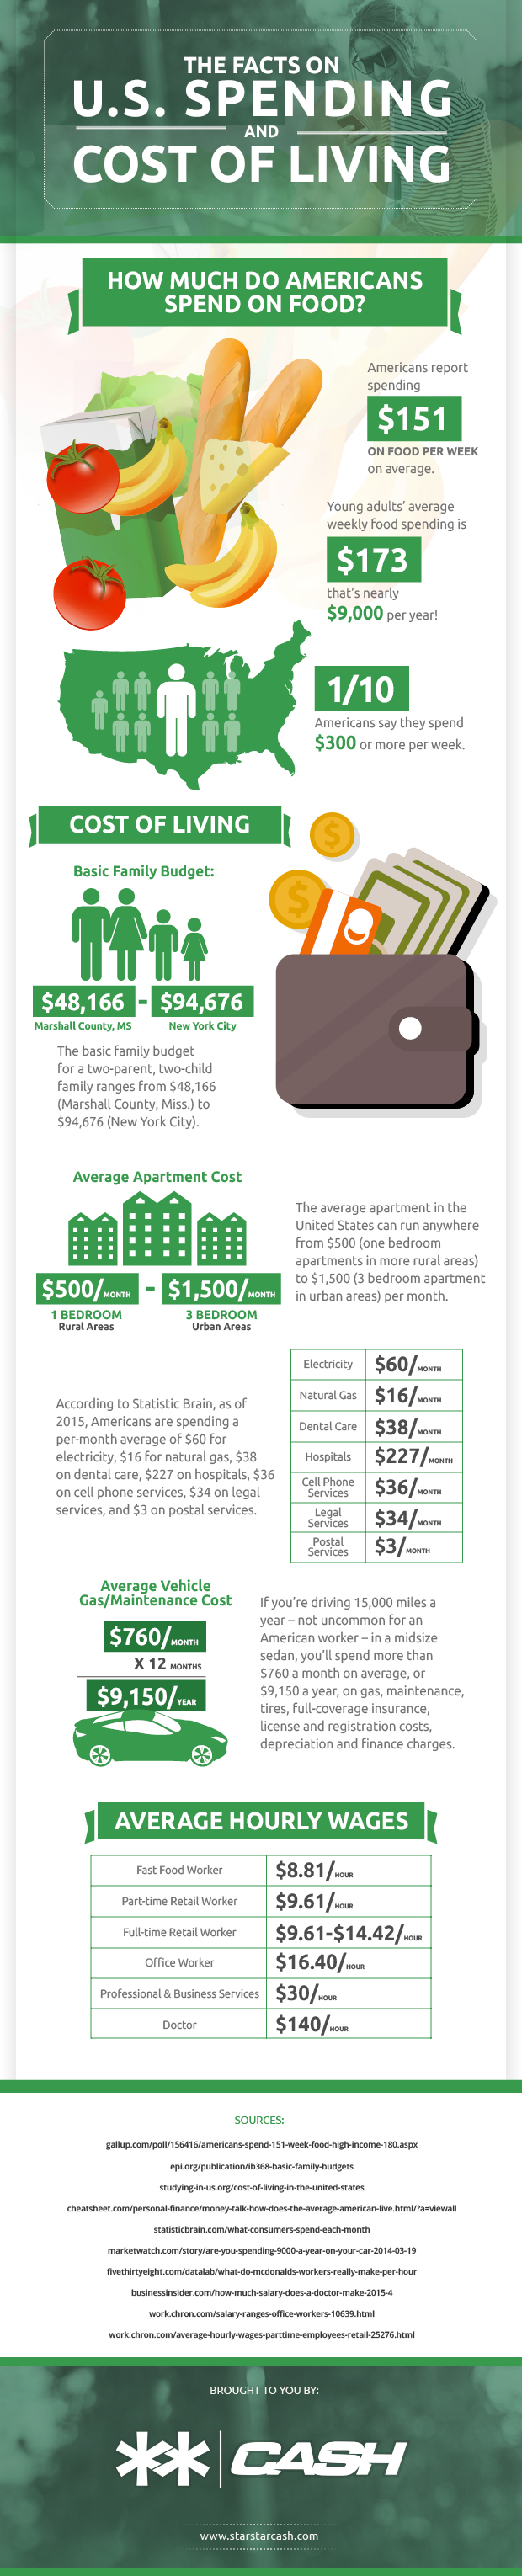 the-facts-of-us-spending-and-cost-of-living_560ab31fd9f72